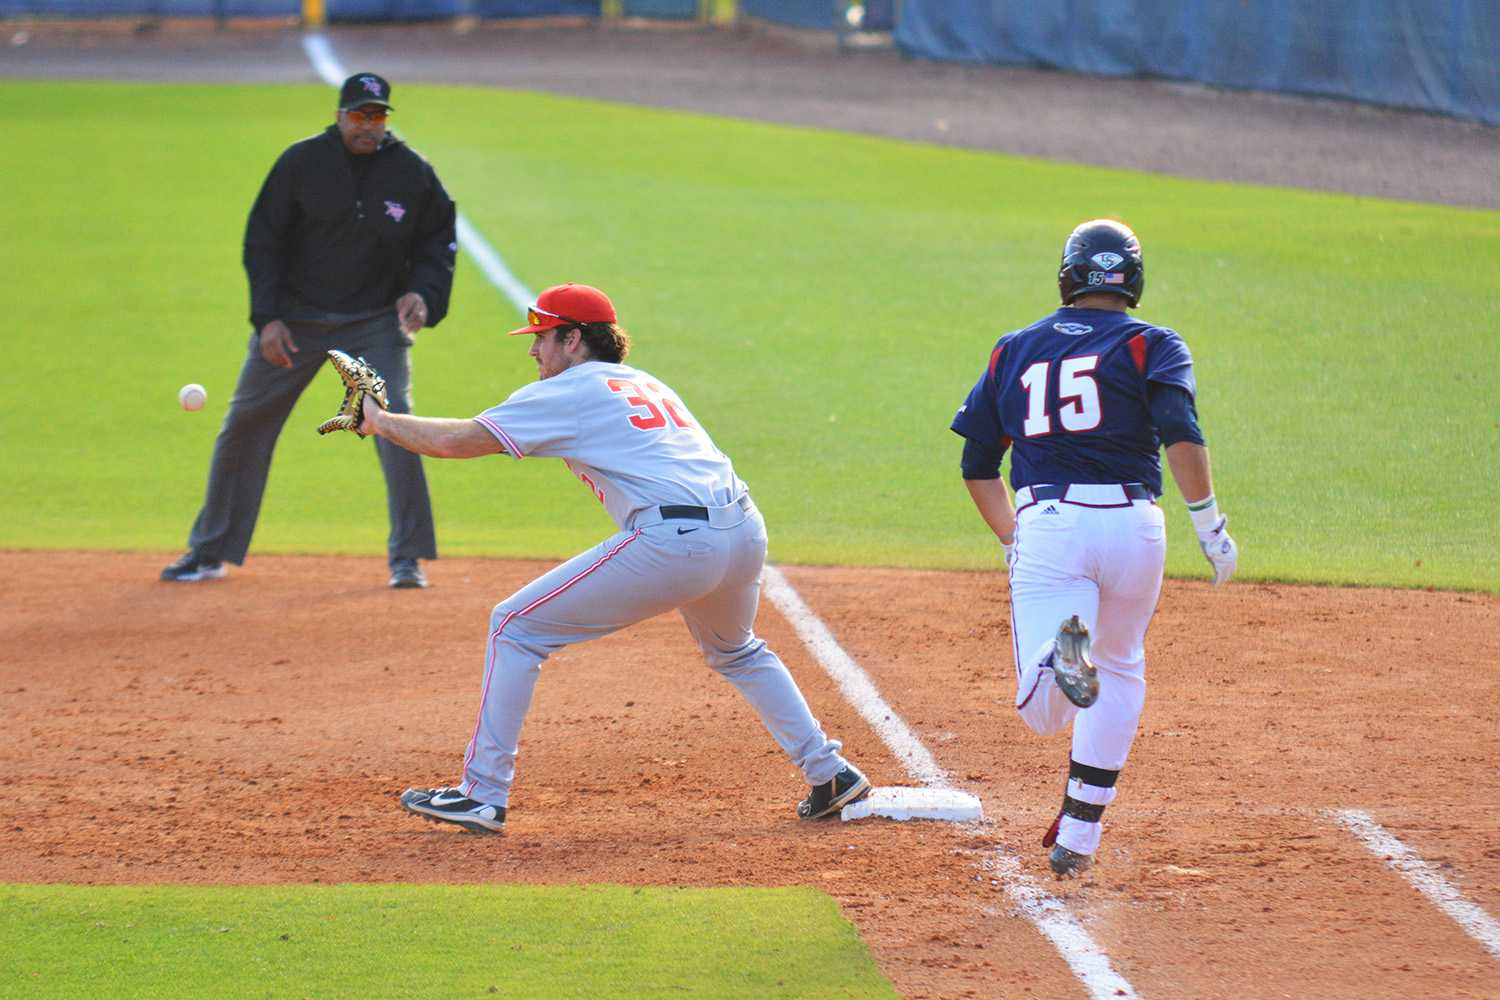 FAU's Roman Collins (15)  tries to outrun the ball at first base in the Owls' win on Saturday.